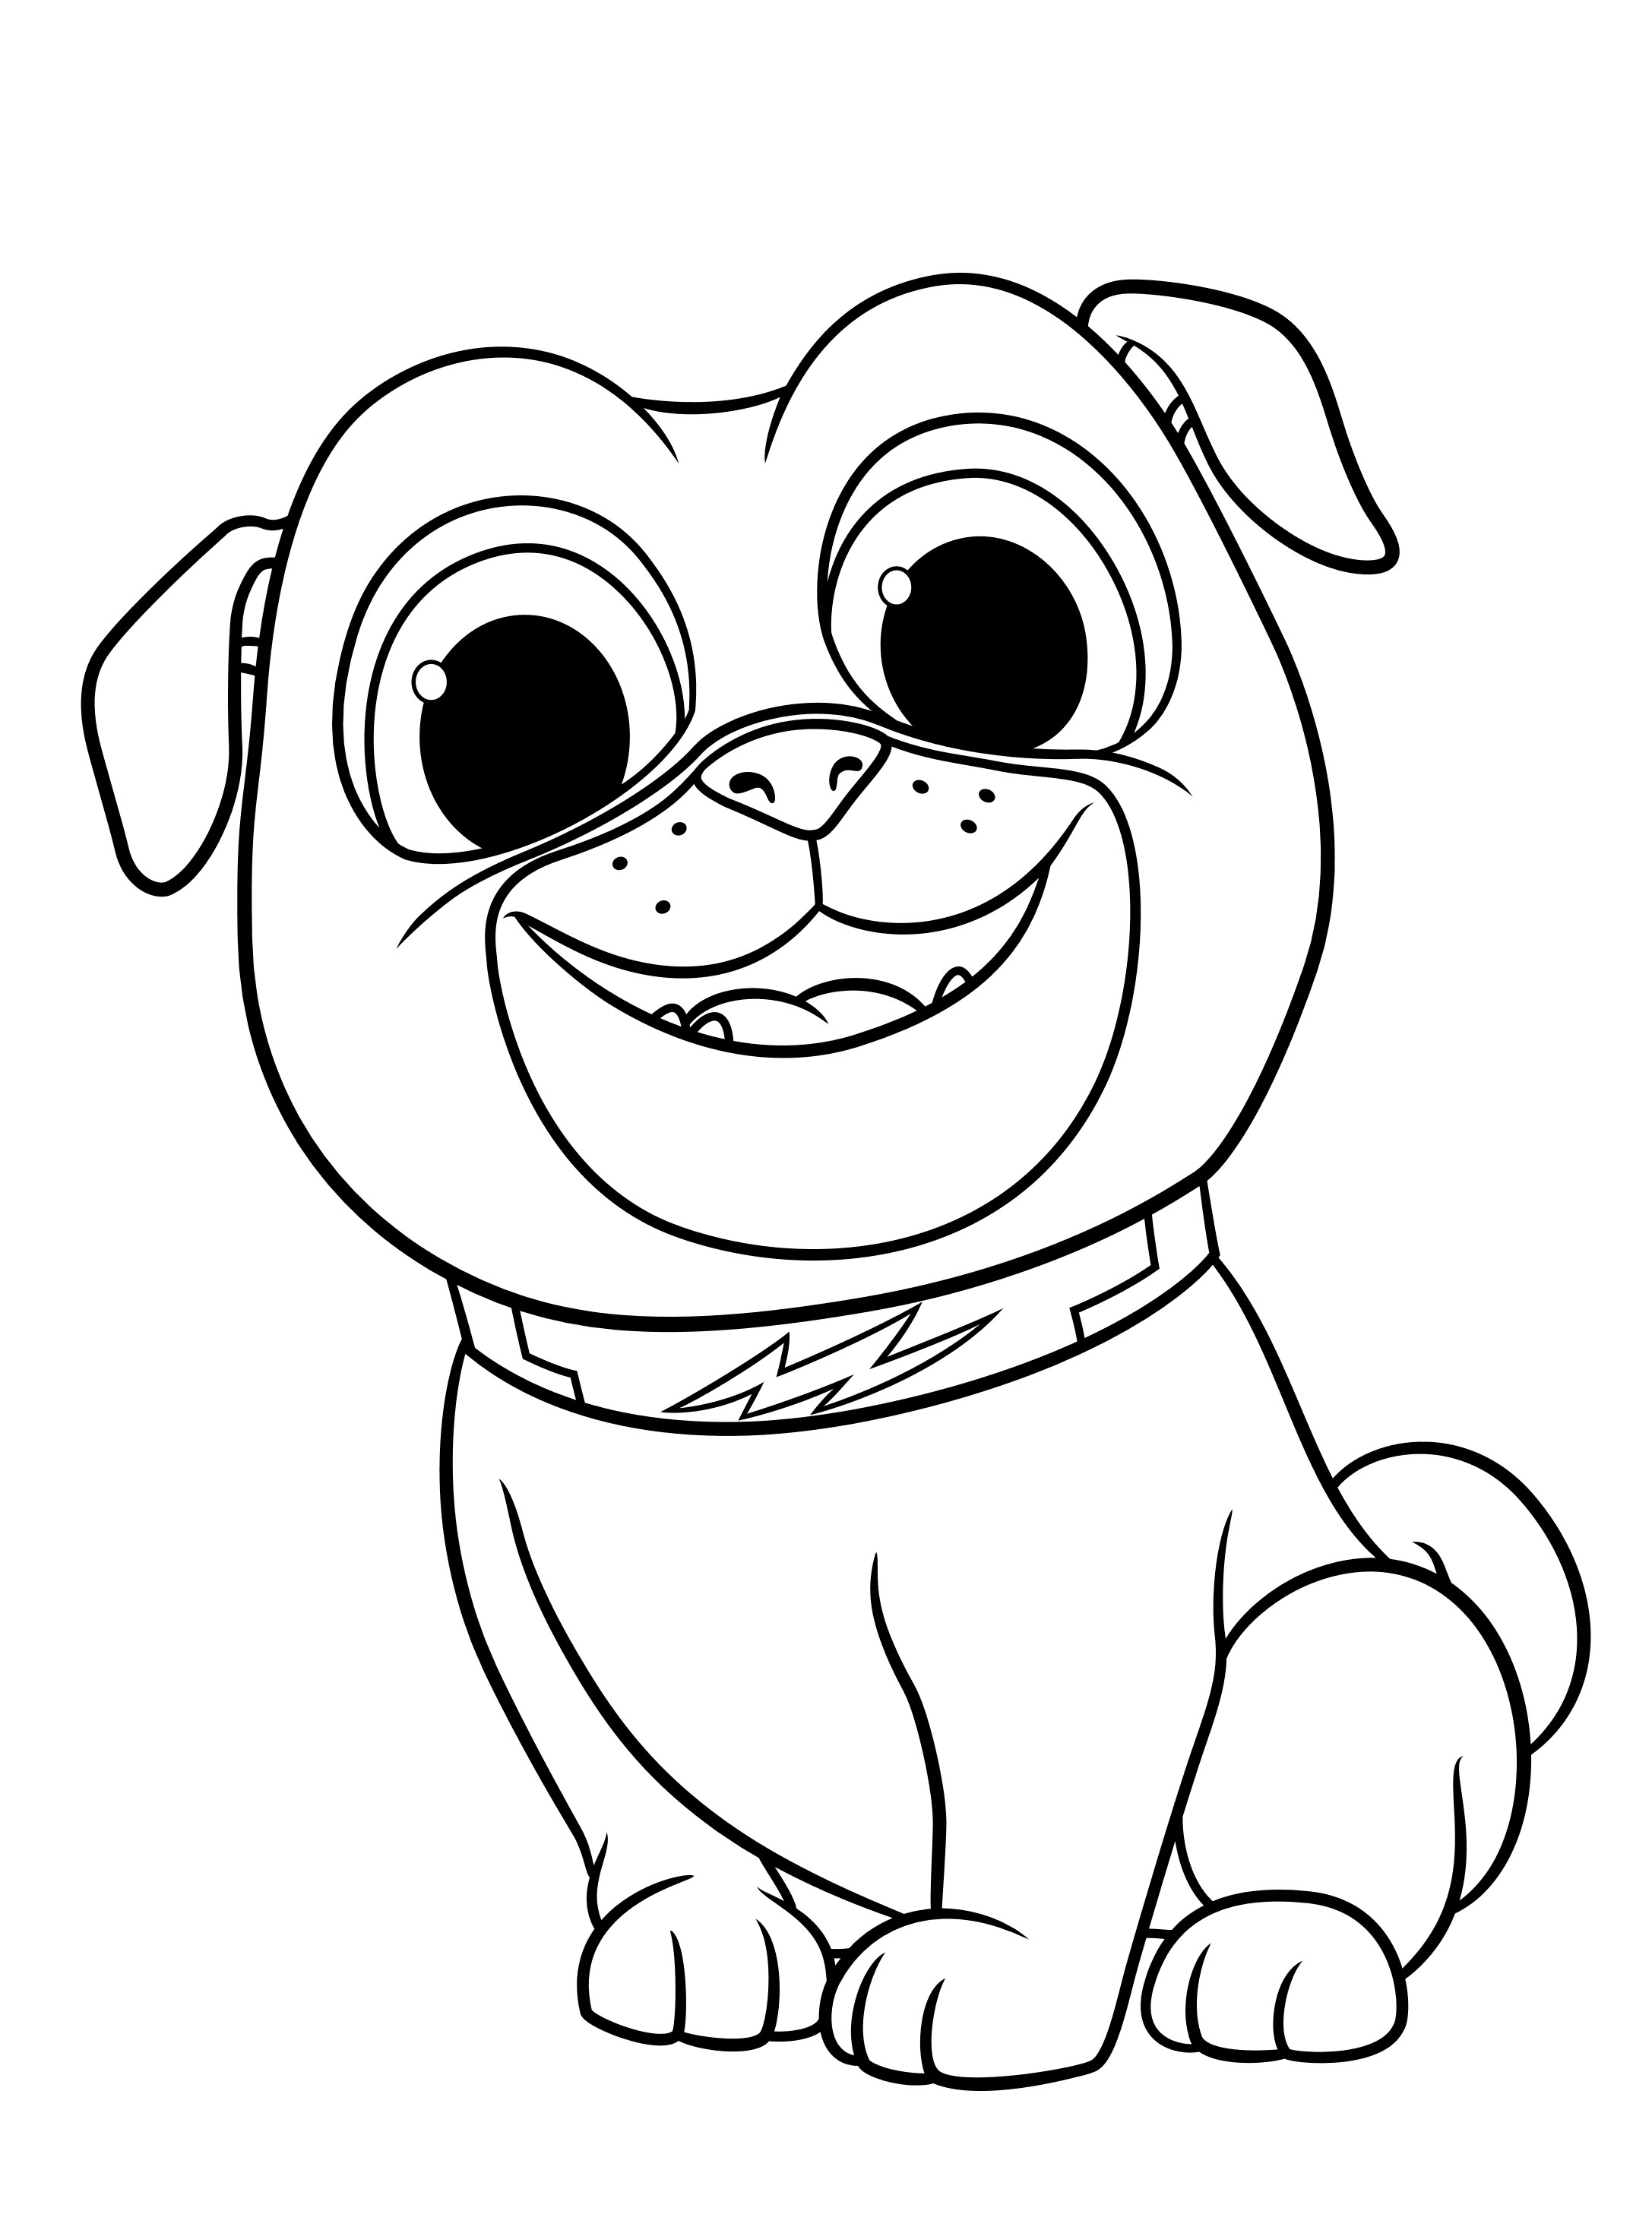 coloring pages of dogs printable top 25 free printable dog coloring pages online of dogs printable coloring pages